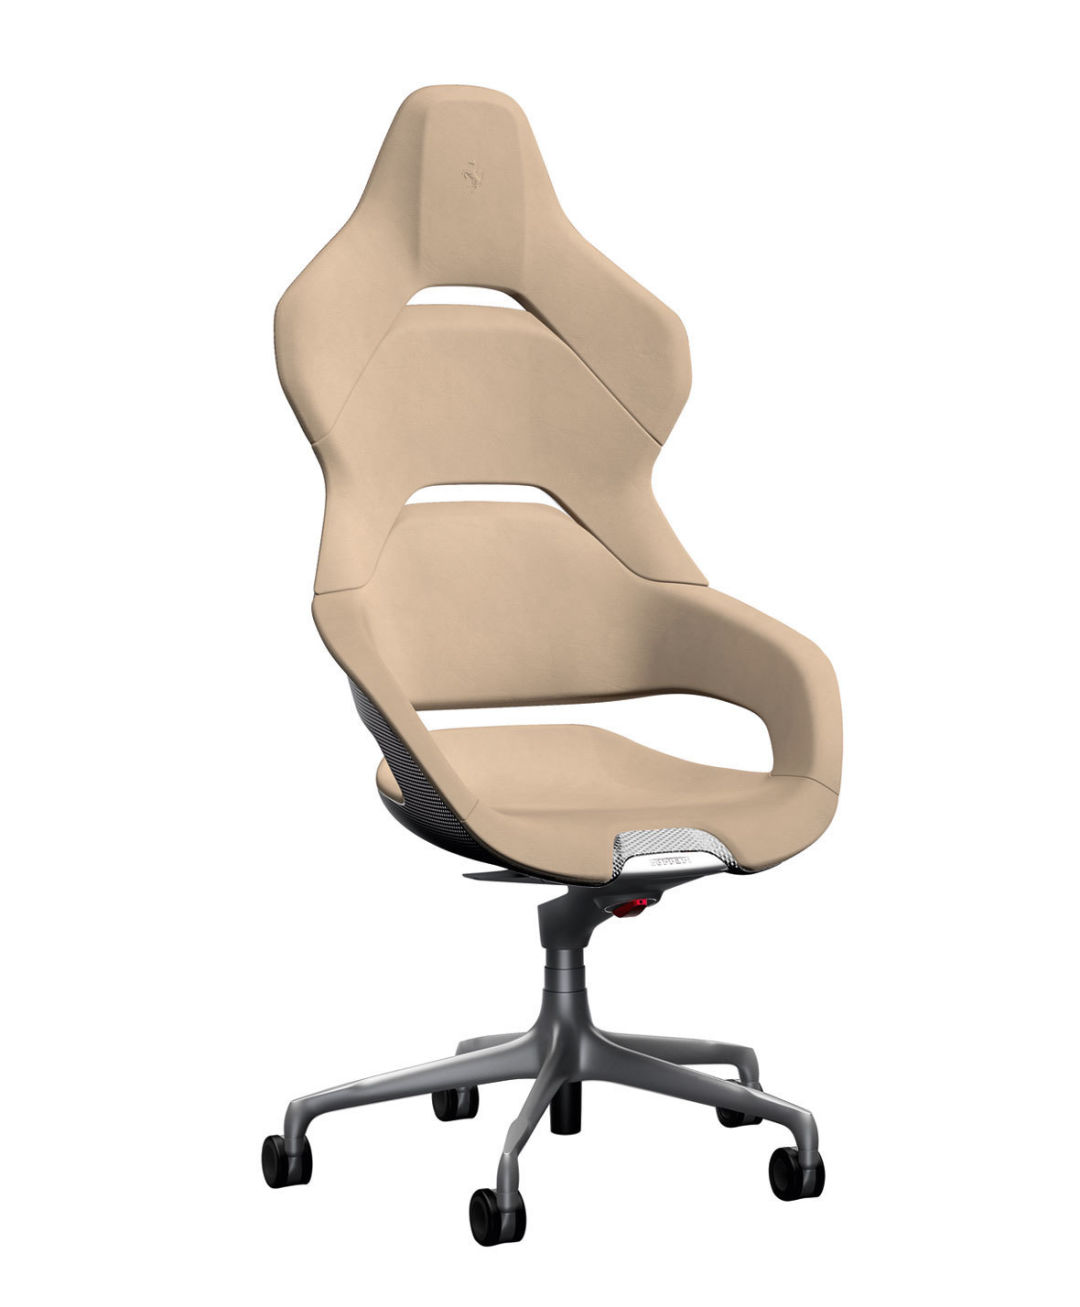 Image of: Six Comfy Office Chairs With Style Sarasota Magazine